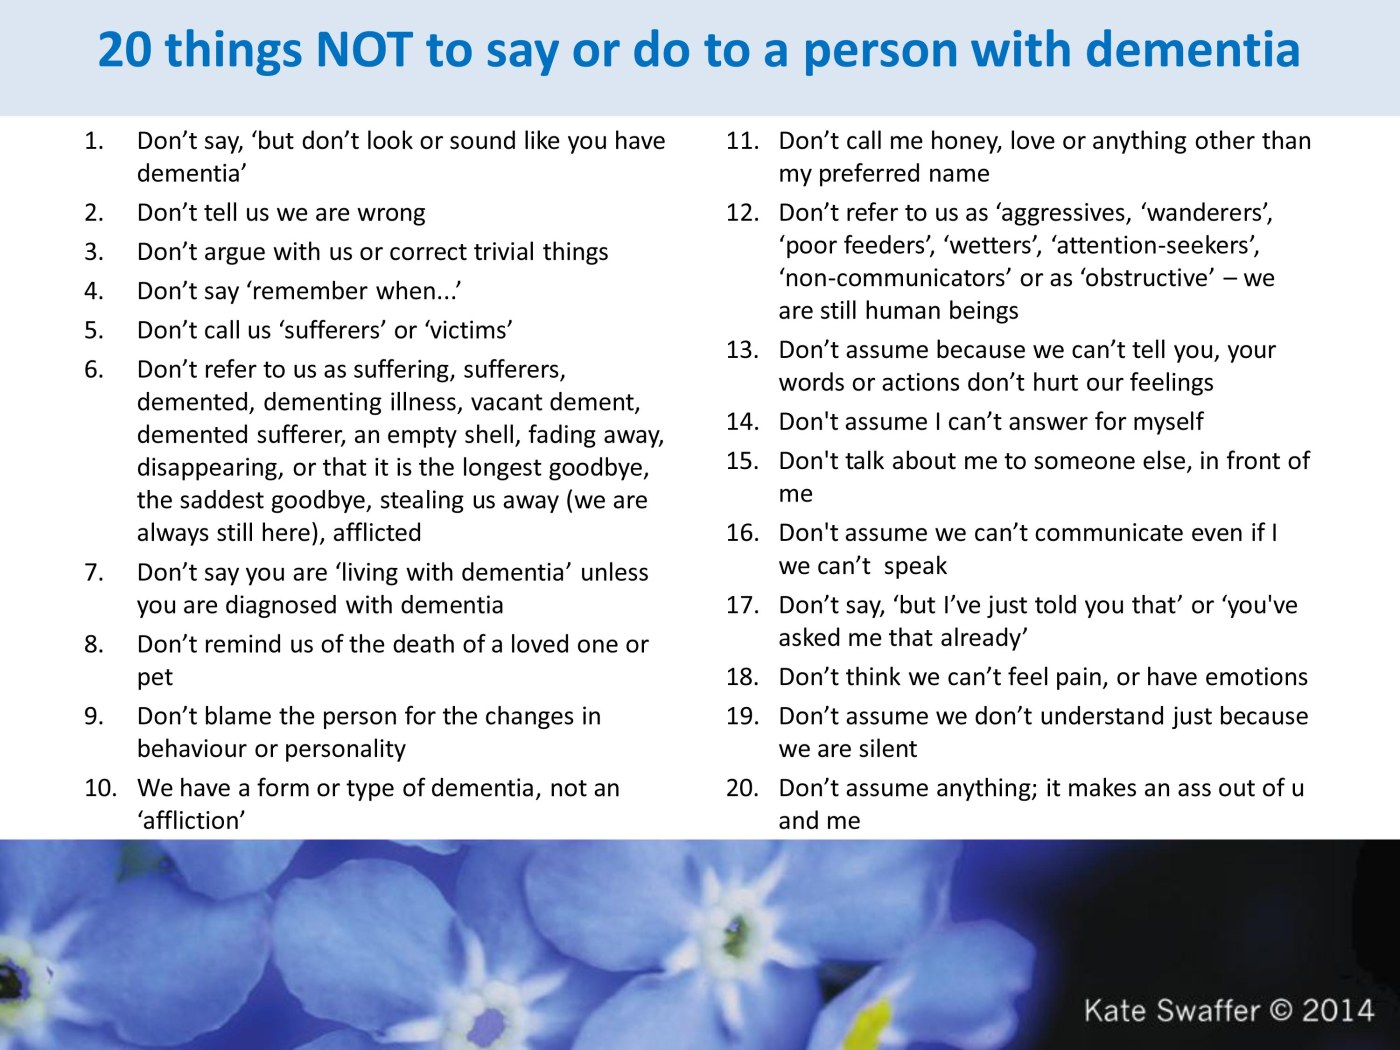 More Positively Supporting A Person With Dementia